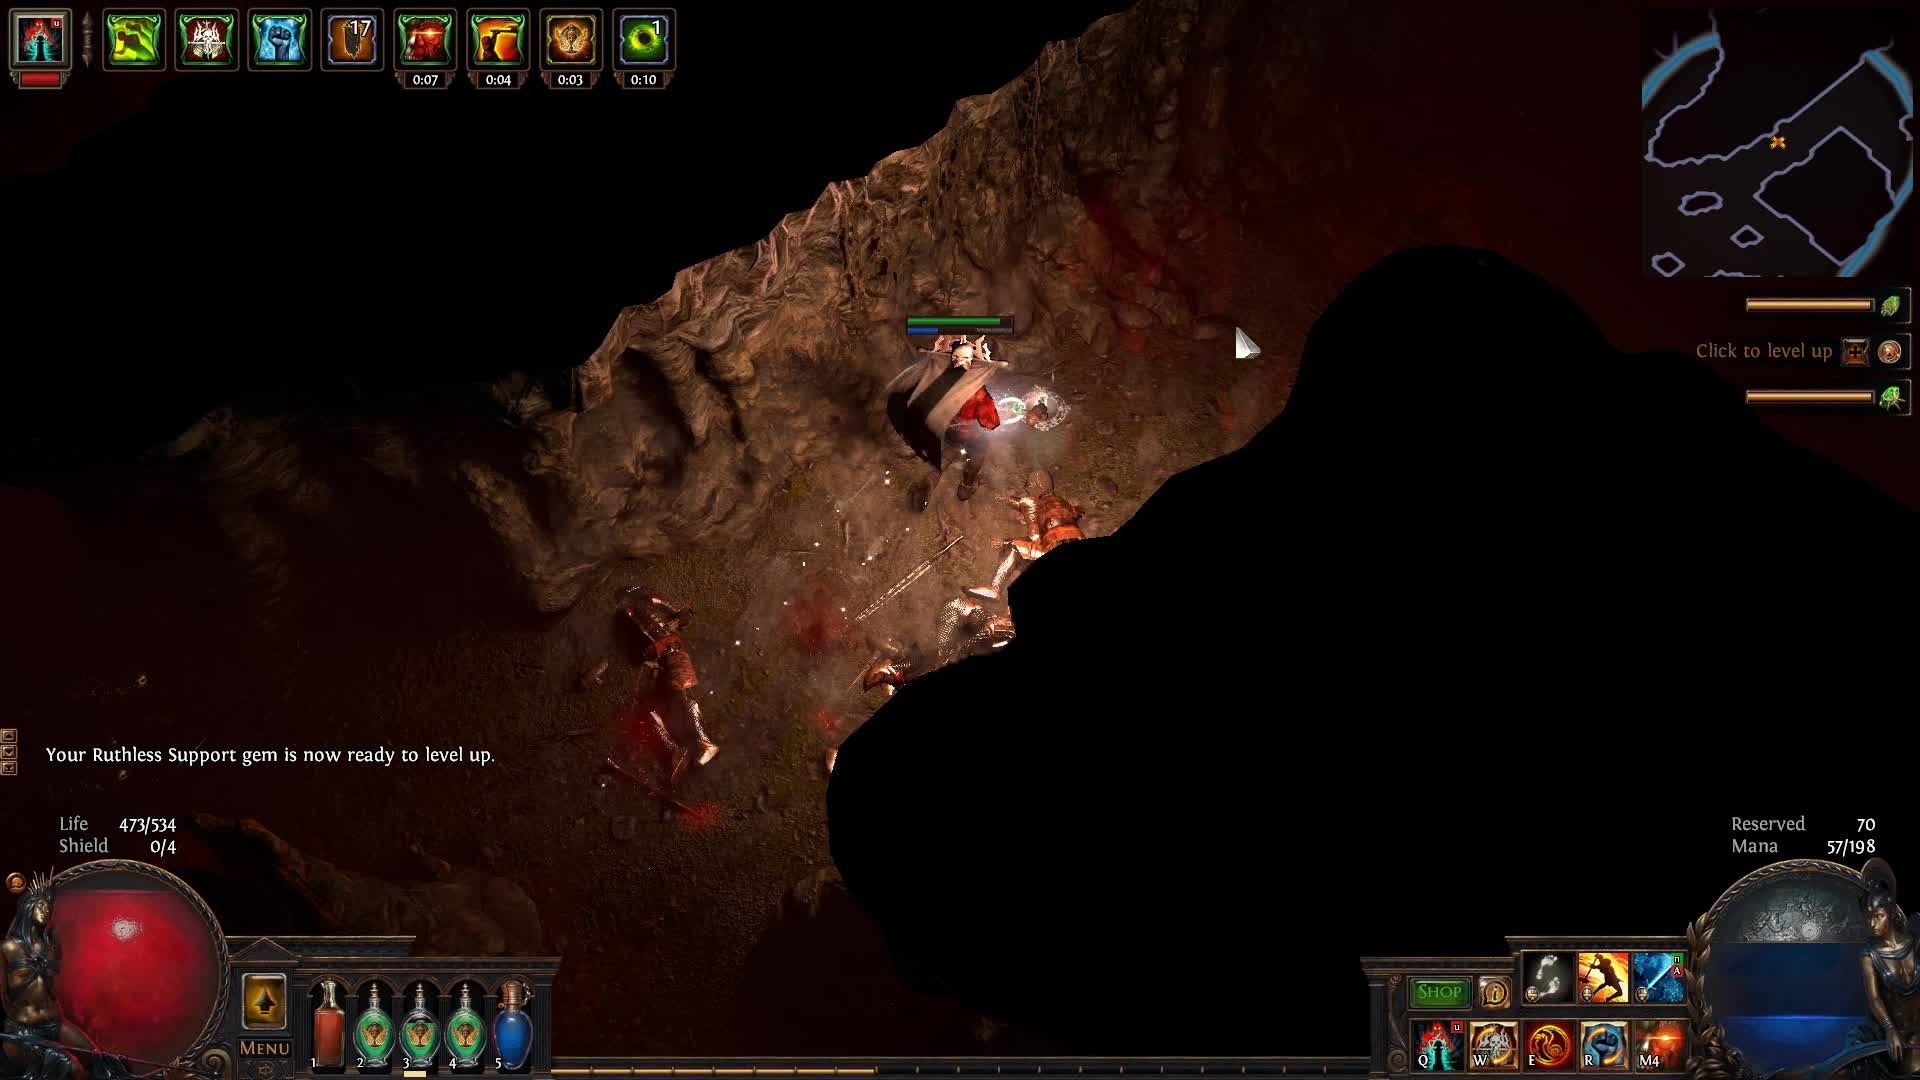 pathofexile, vlc-record-2018-12-07-20h51m28s-Path Of Exile 2018.12.07 - 20.50.33.51.DVR.mp4- GIFs